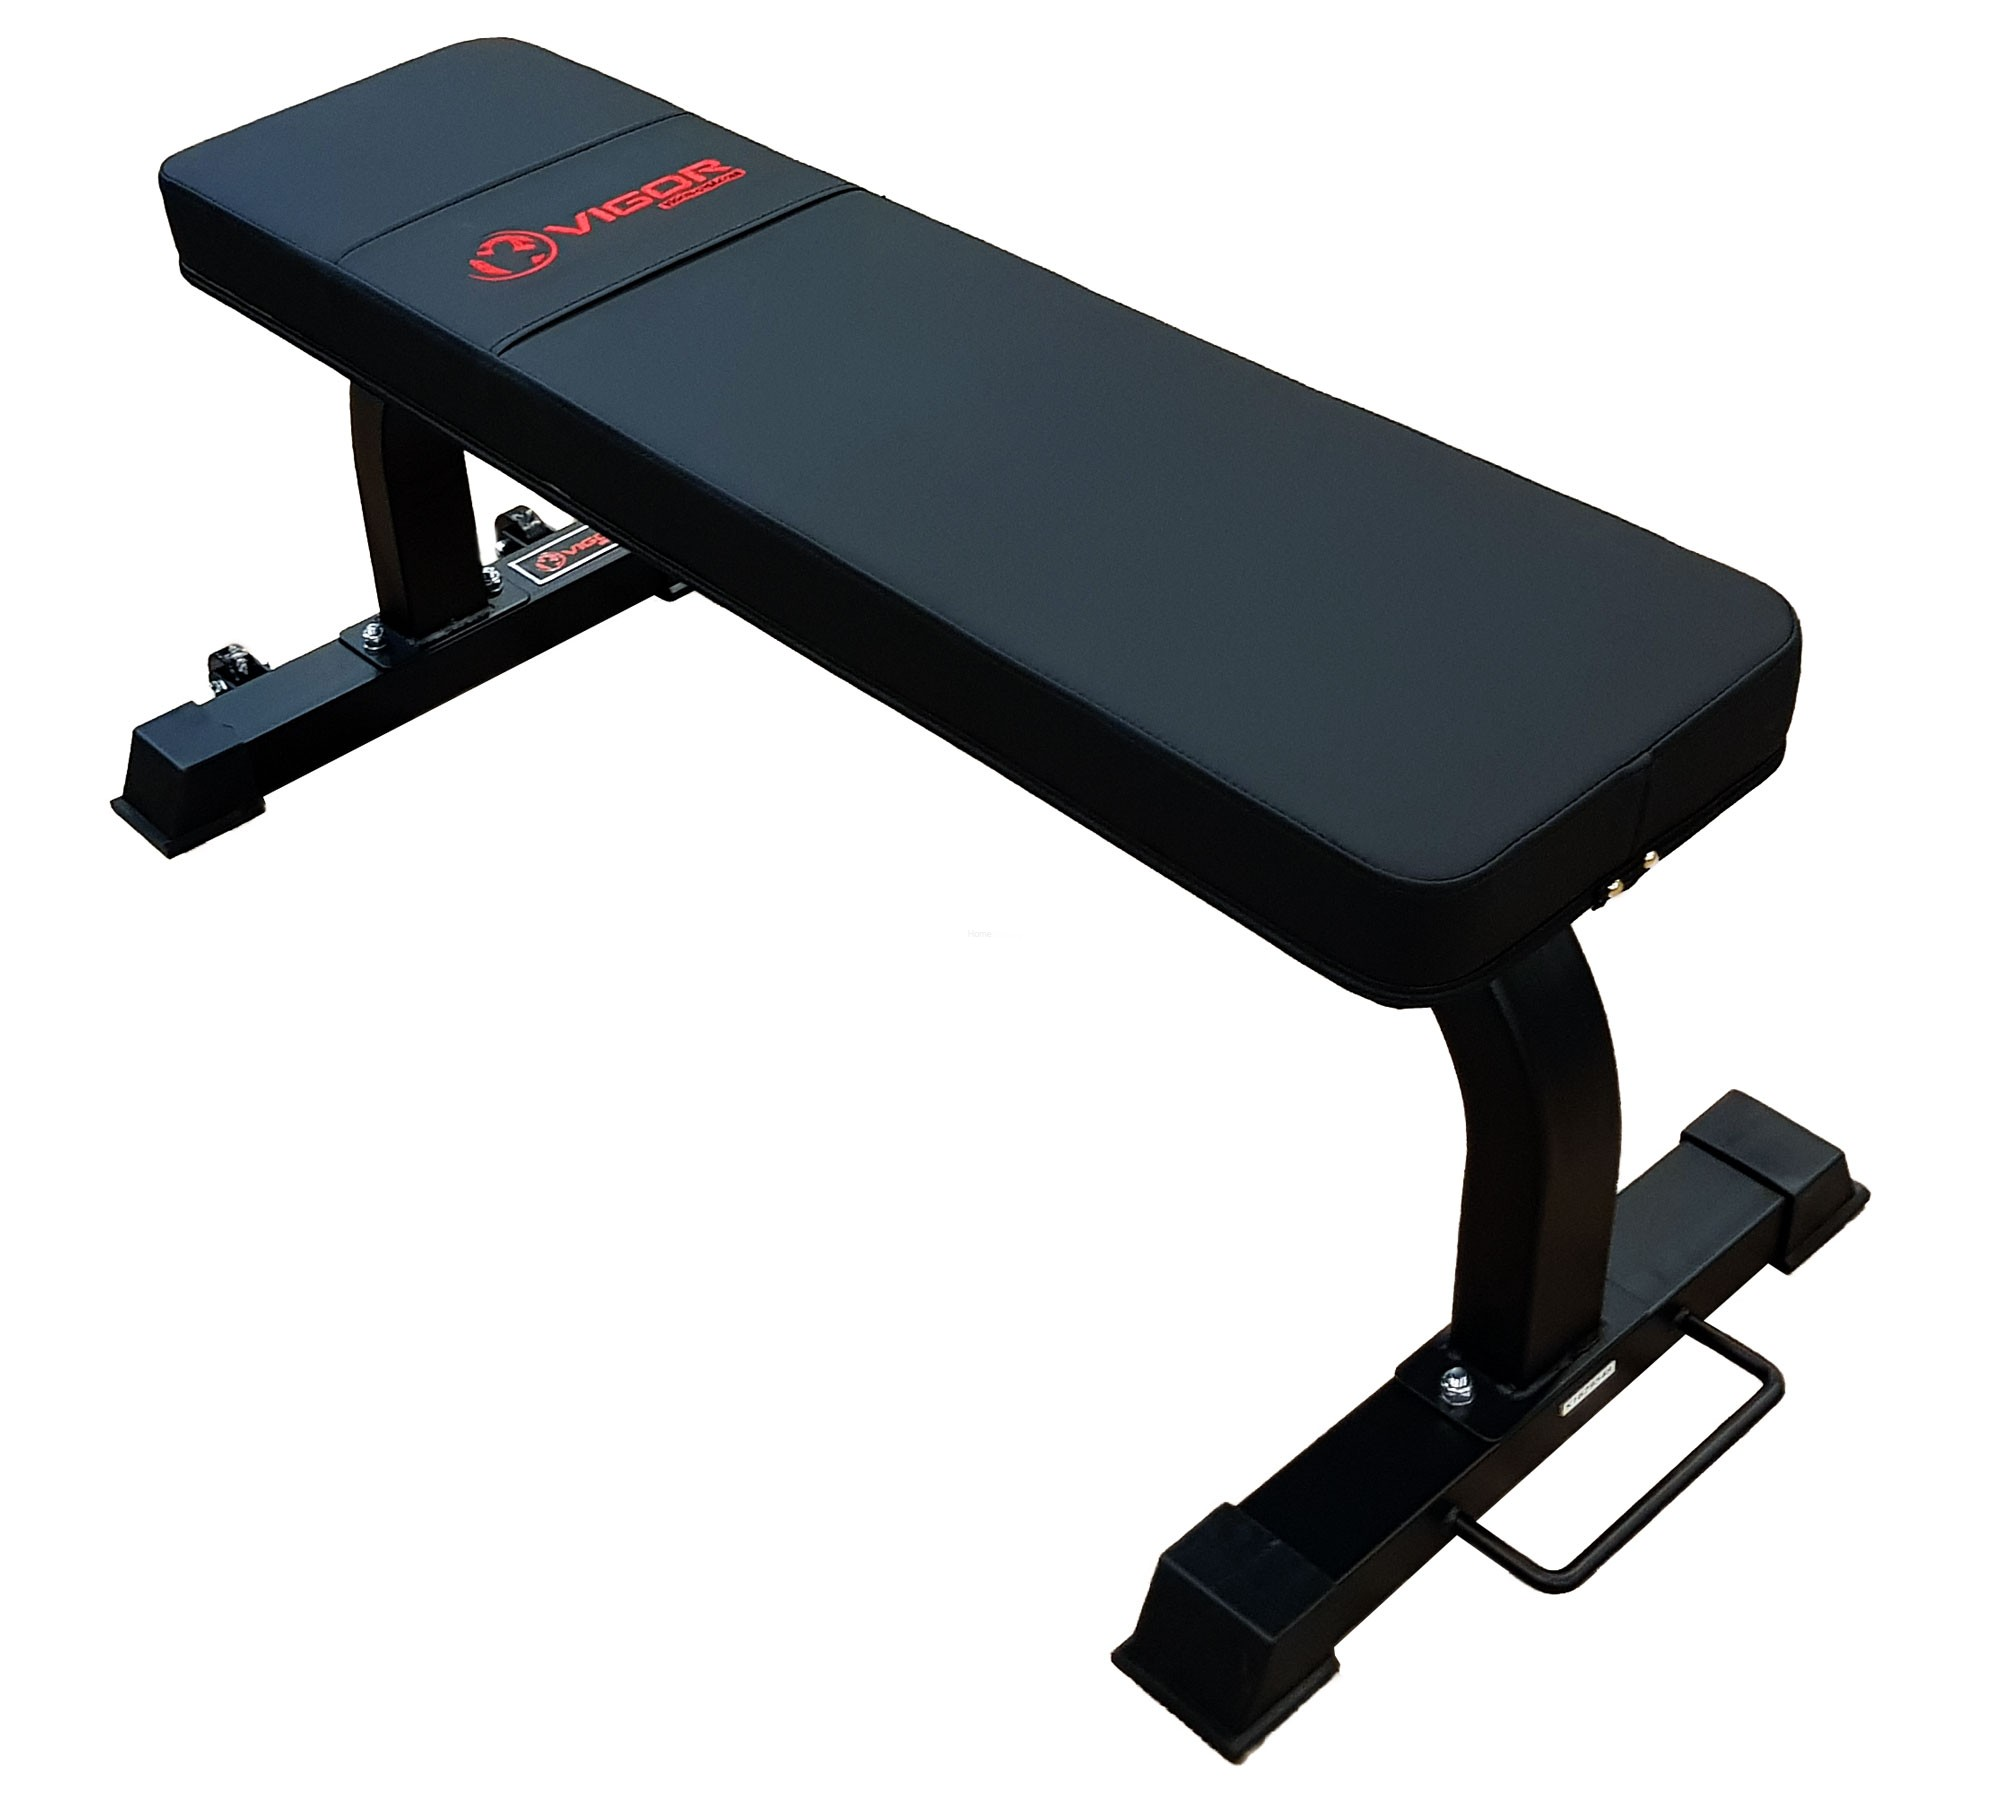 Used Workout Bench | Craigslist Weight Bench | Olympic Bench Press for Sale